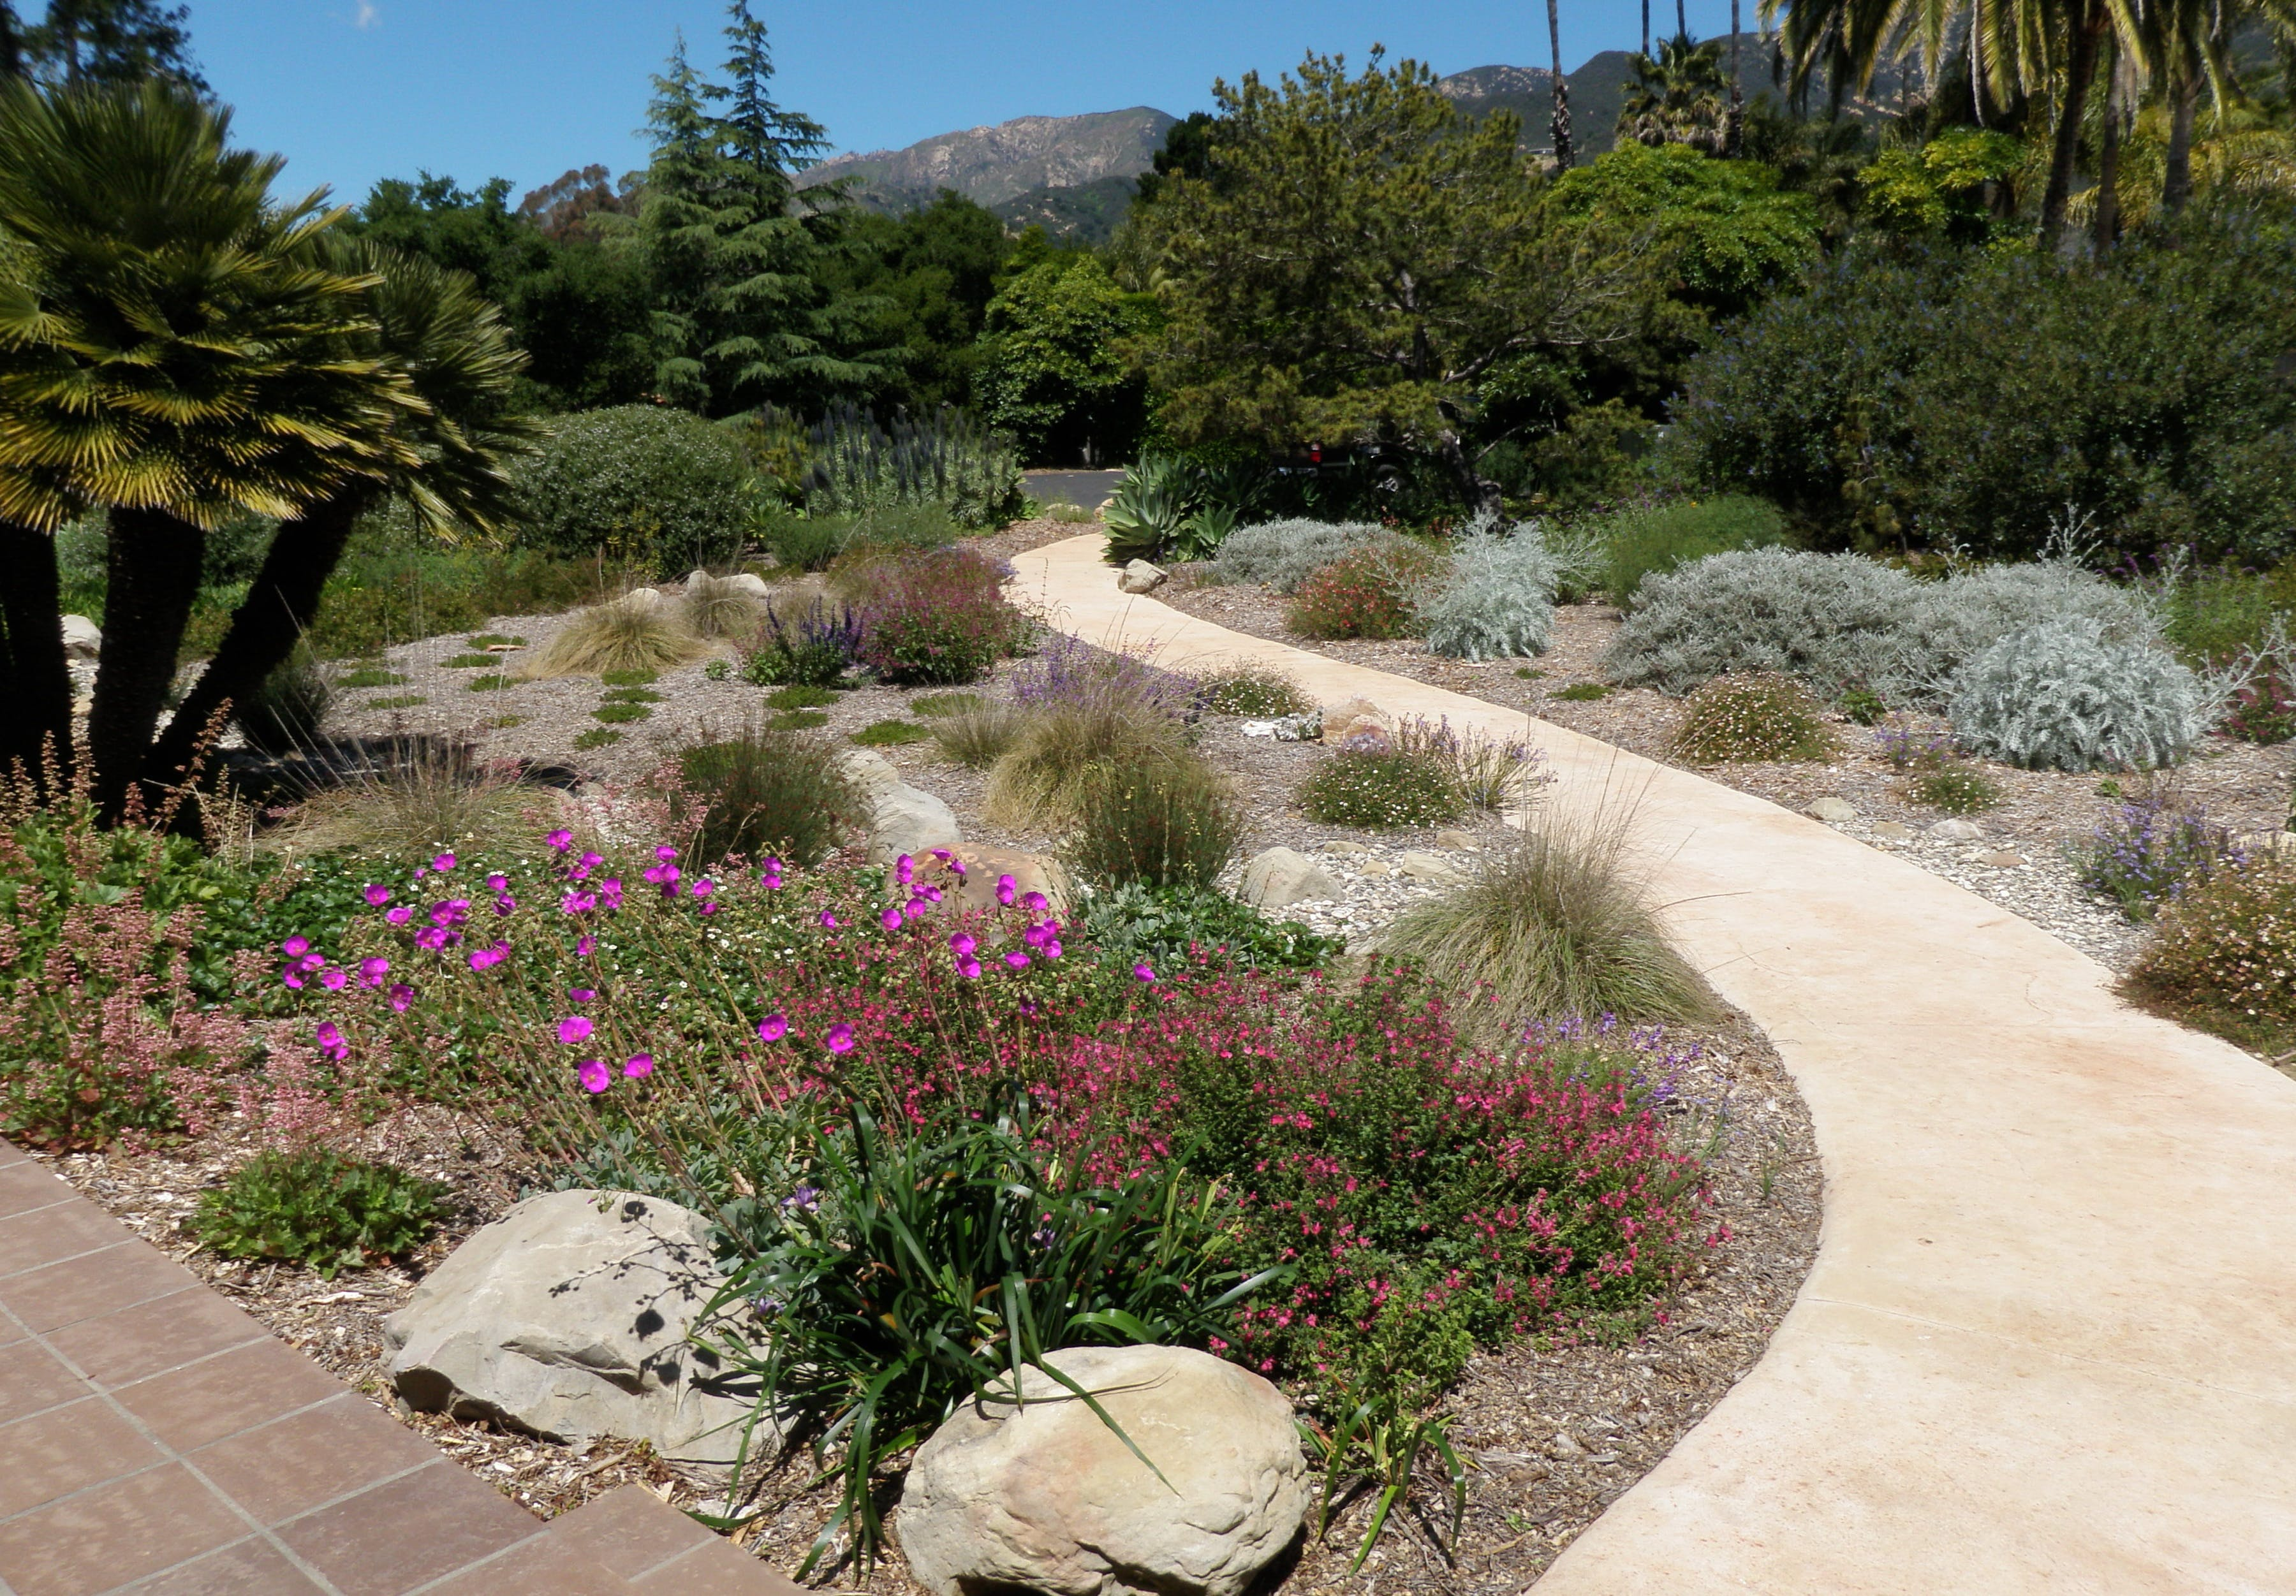 Path and gardens